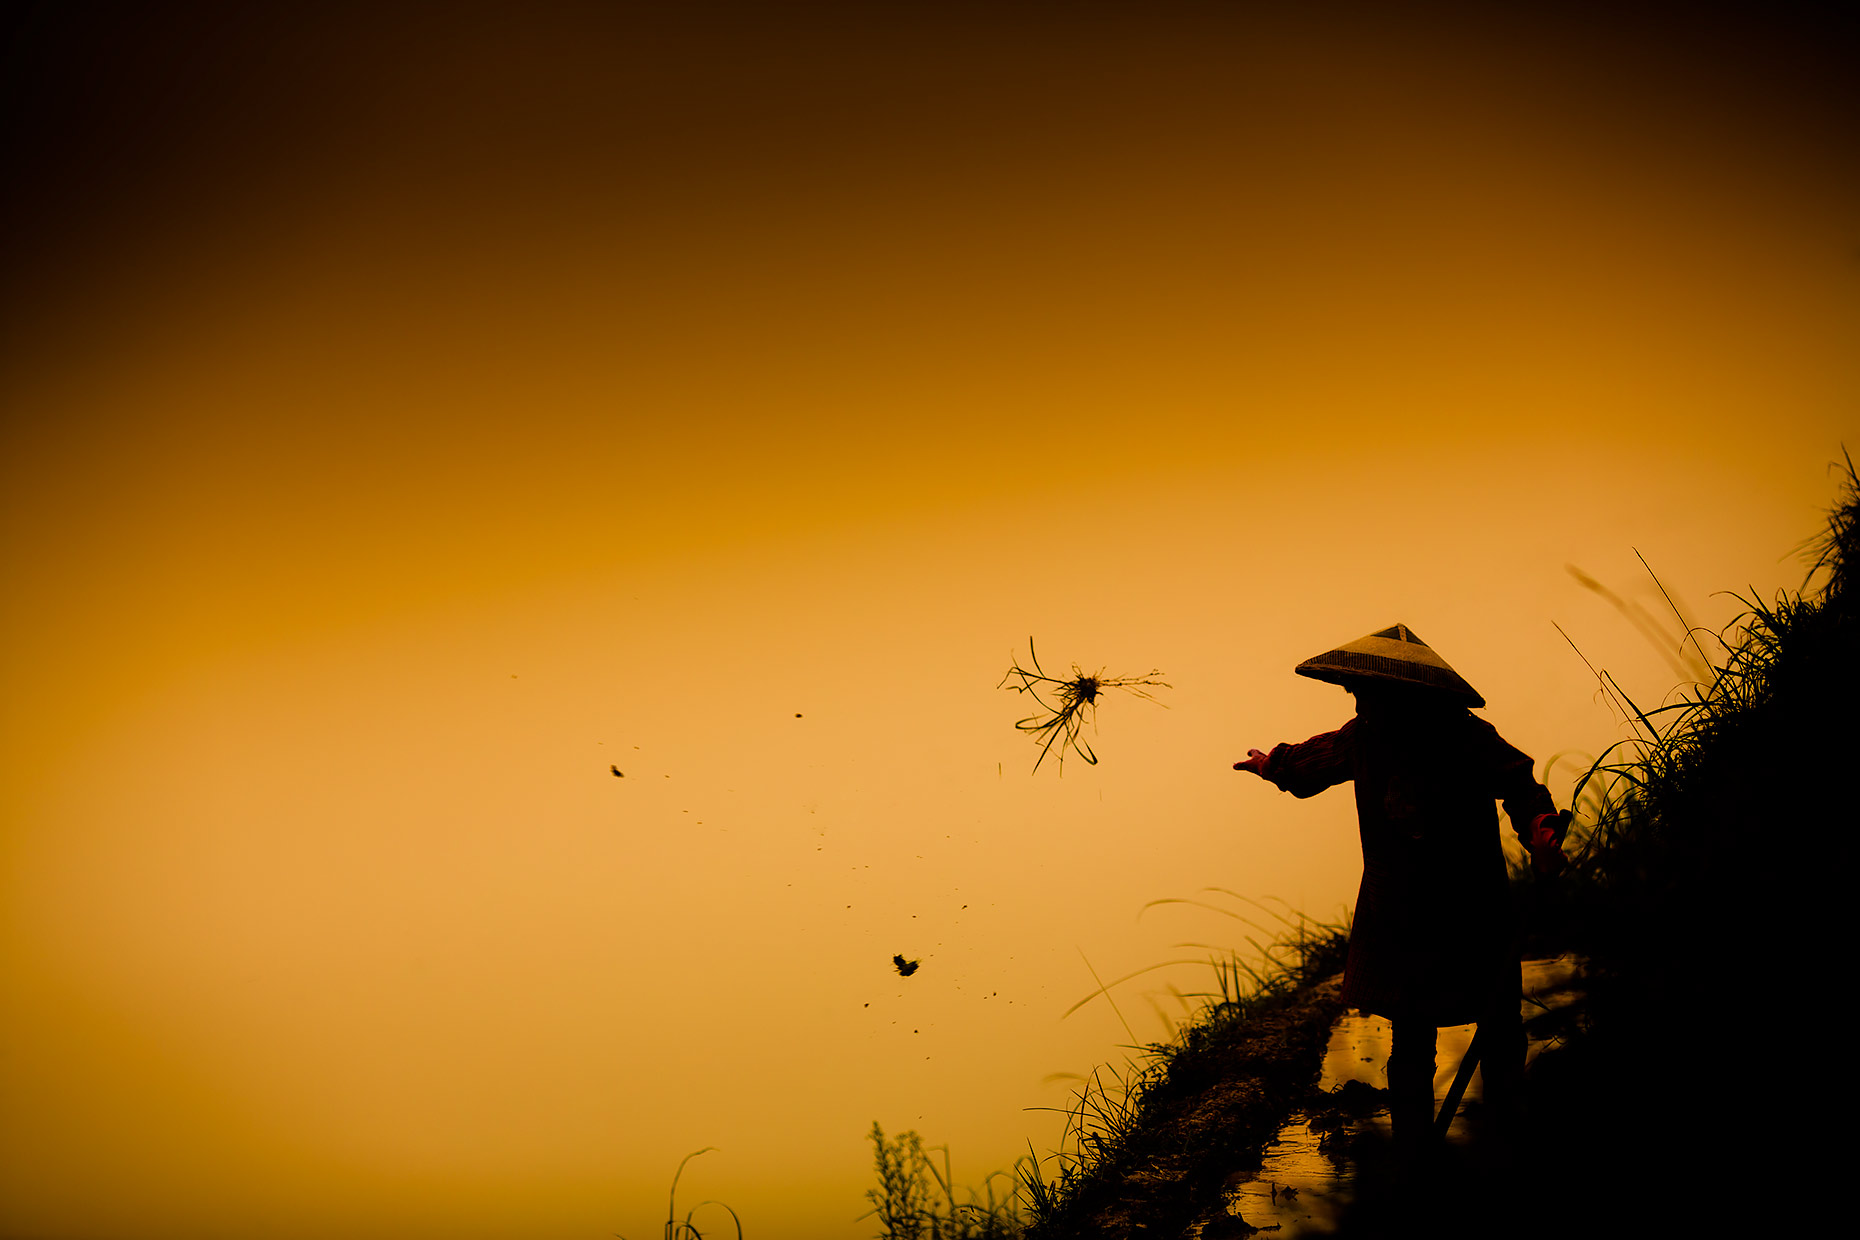 A Guangxi province highlands farmer clears a rice paddy | Scott Gable industrial photographer